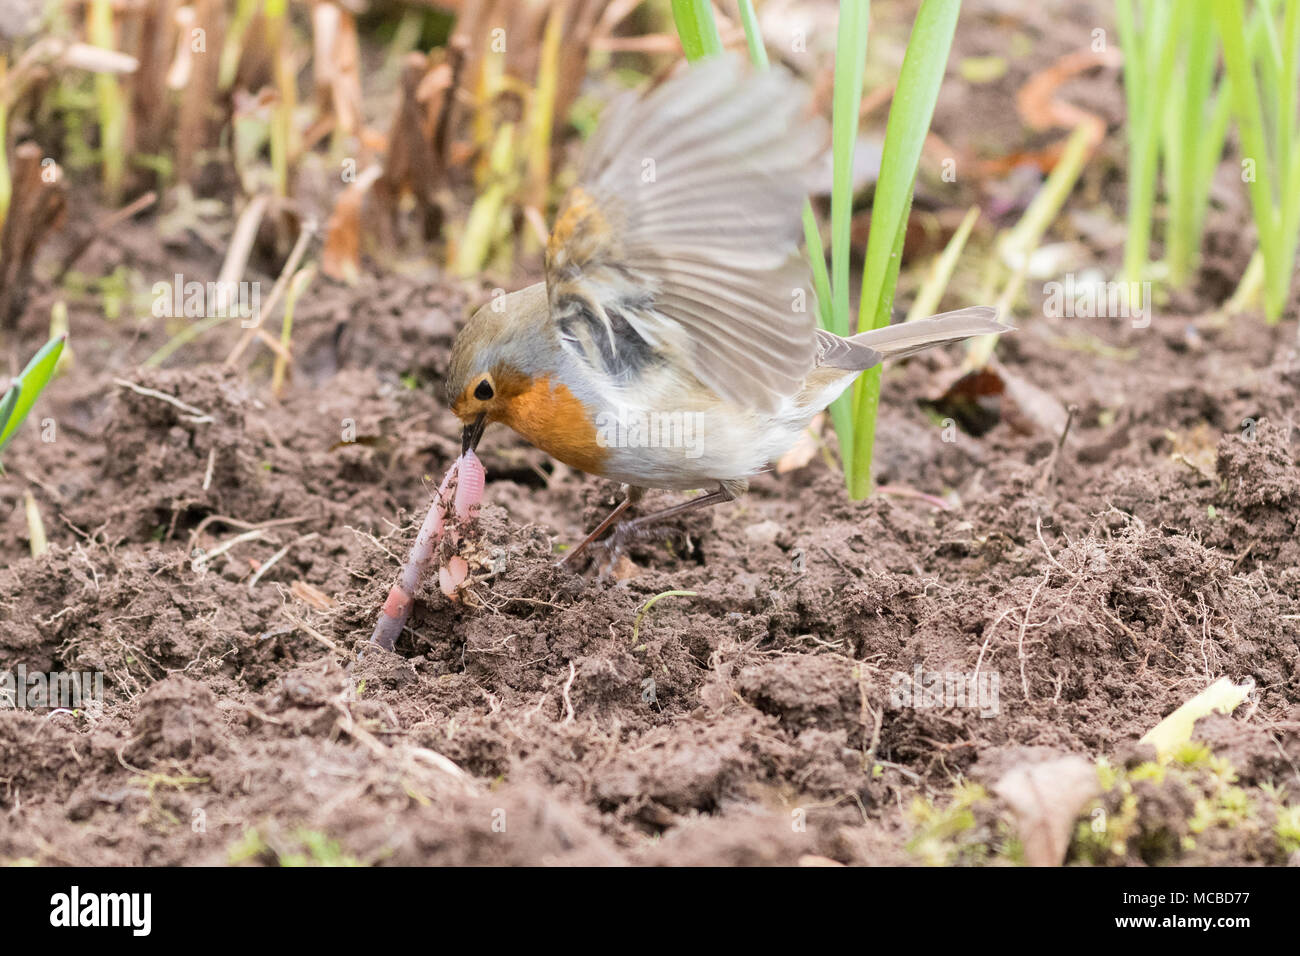 Robin Erithacus Rubecula pulling at a worm that has been uncovered by a gardener - Stock Image